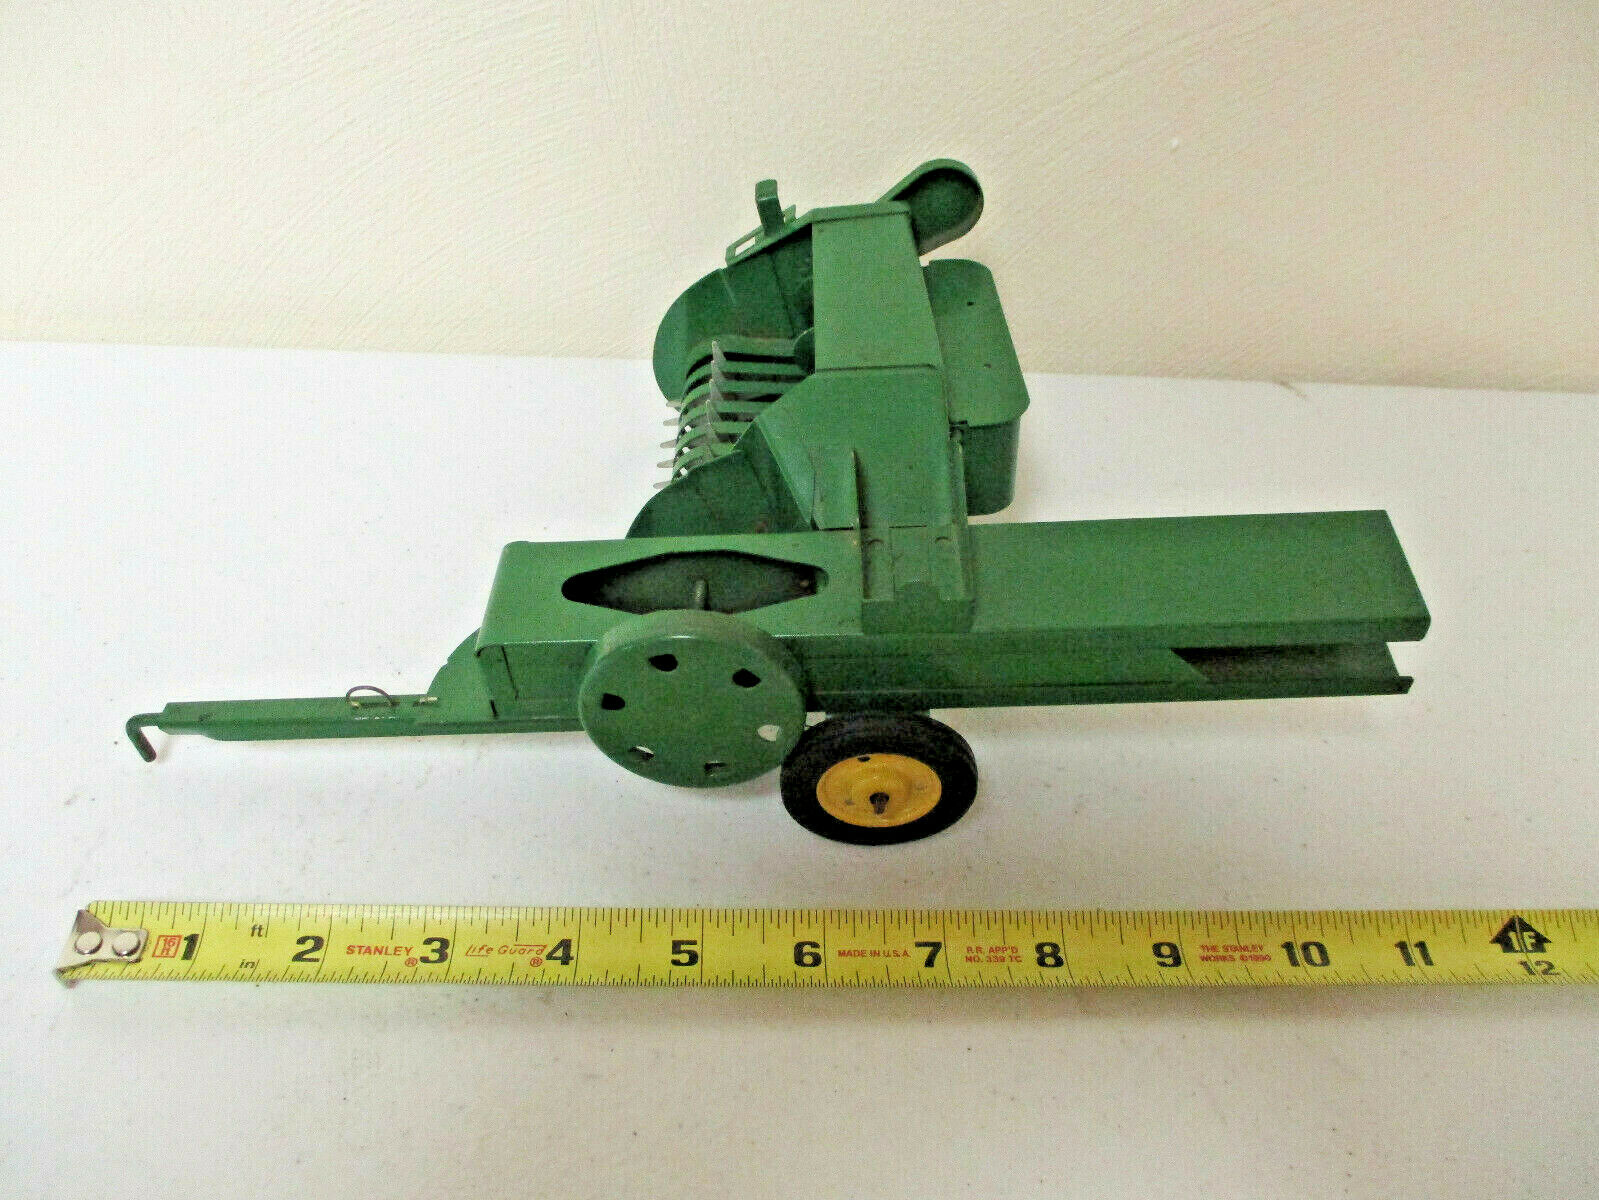 John Deere Square Baler With Missing Chute By Eska 1950's  Nice Condition